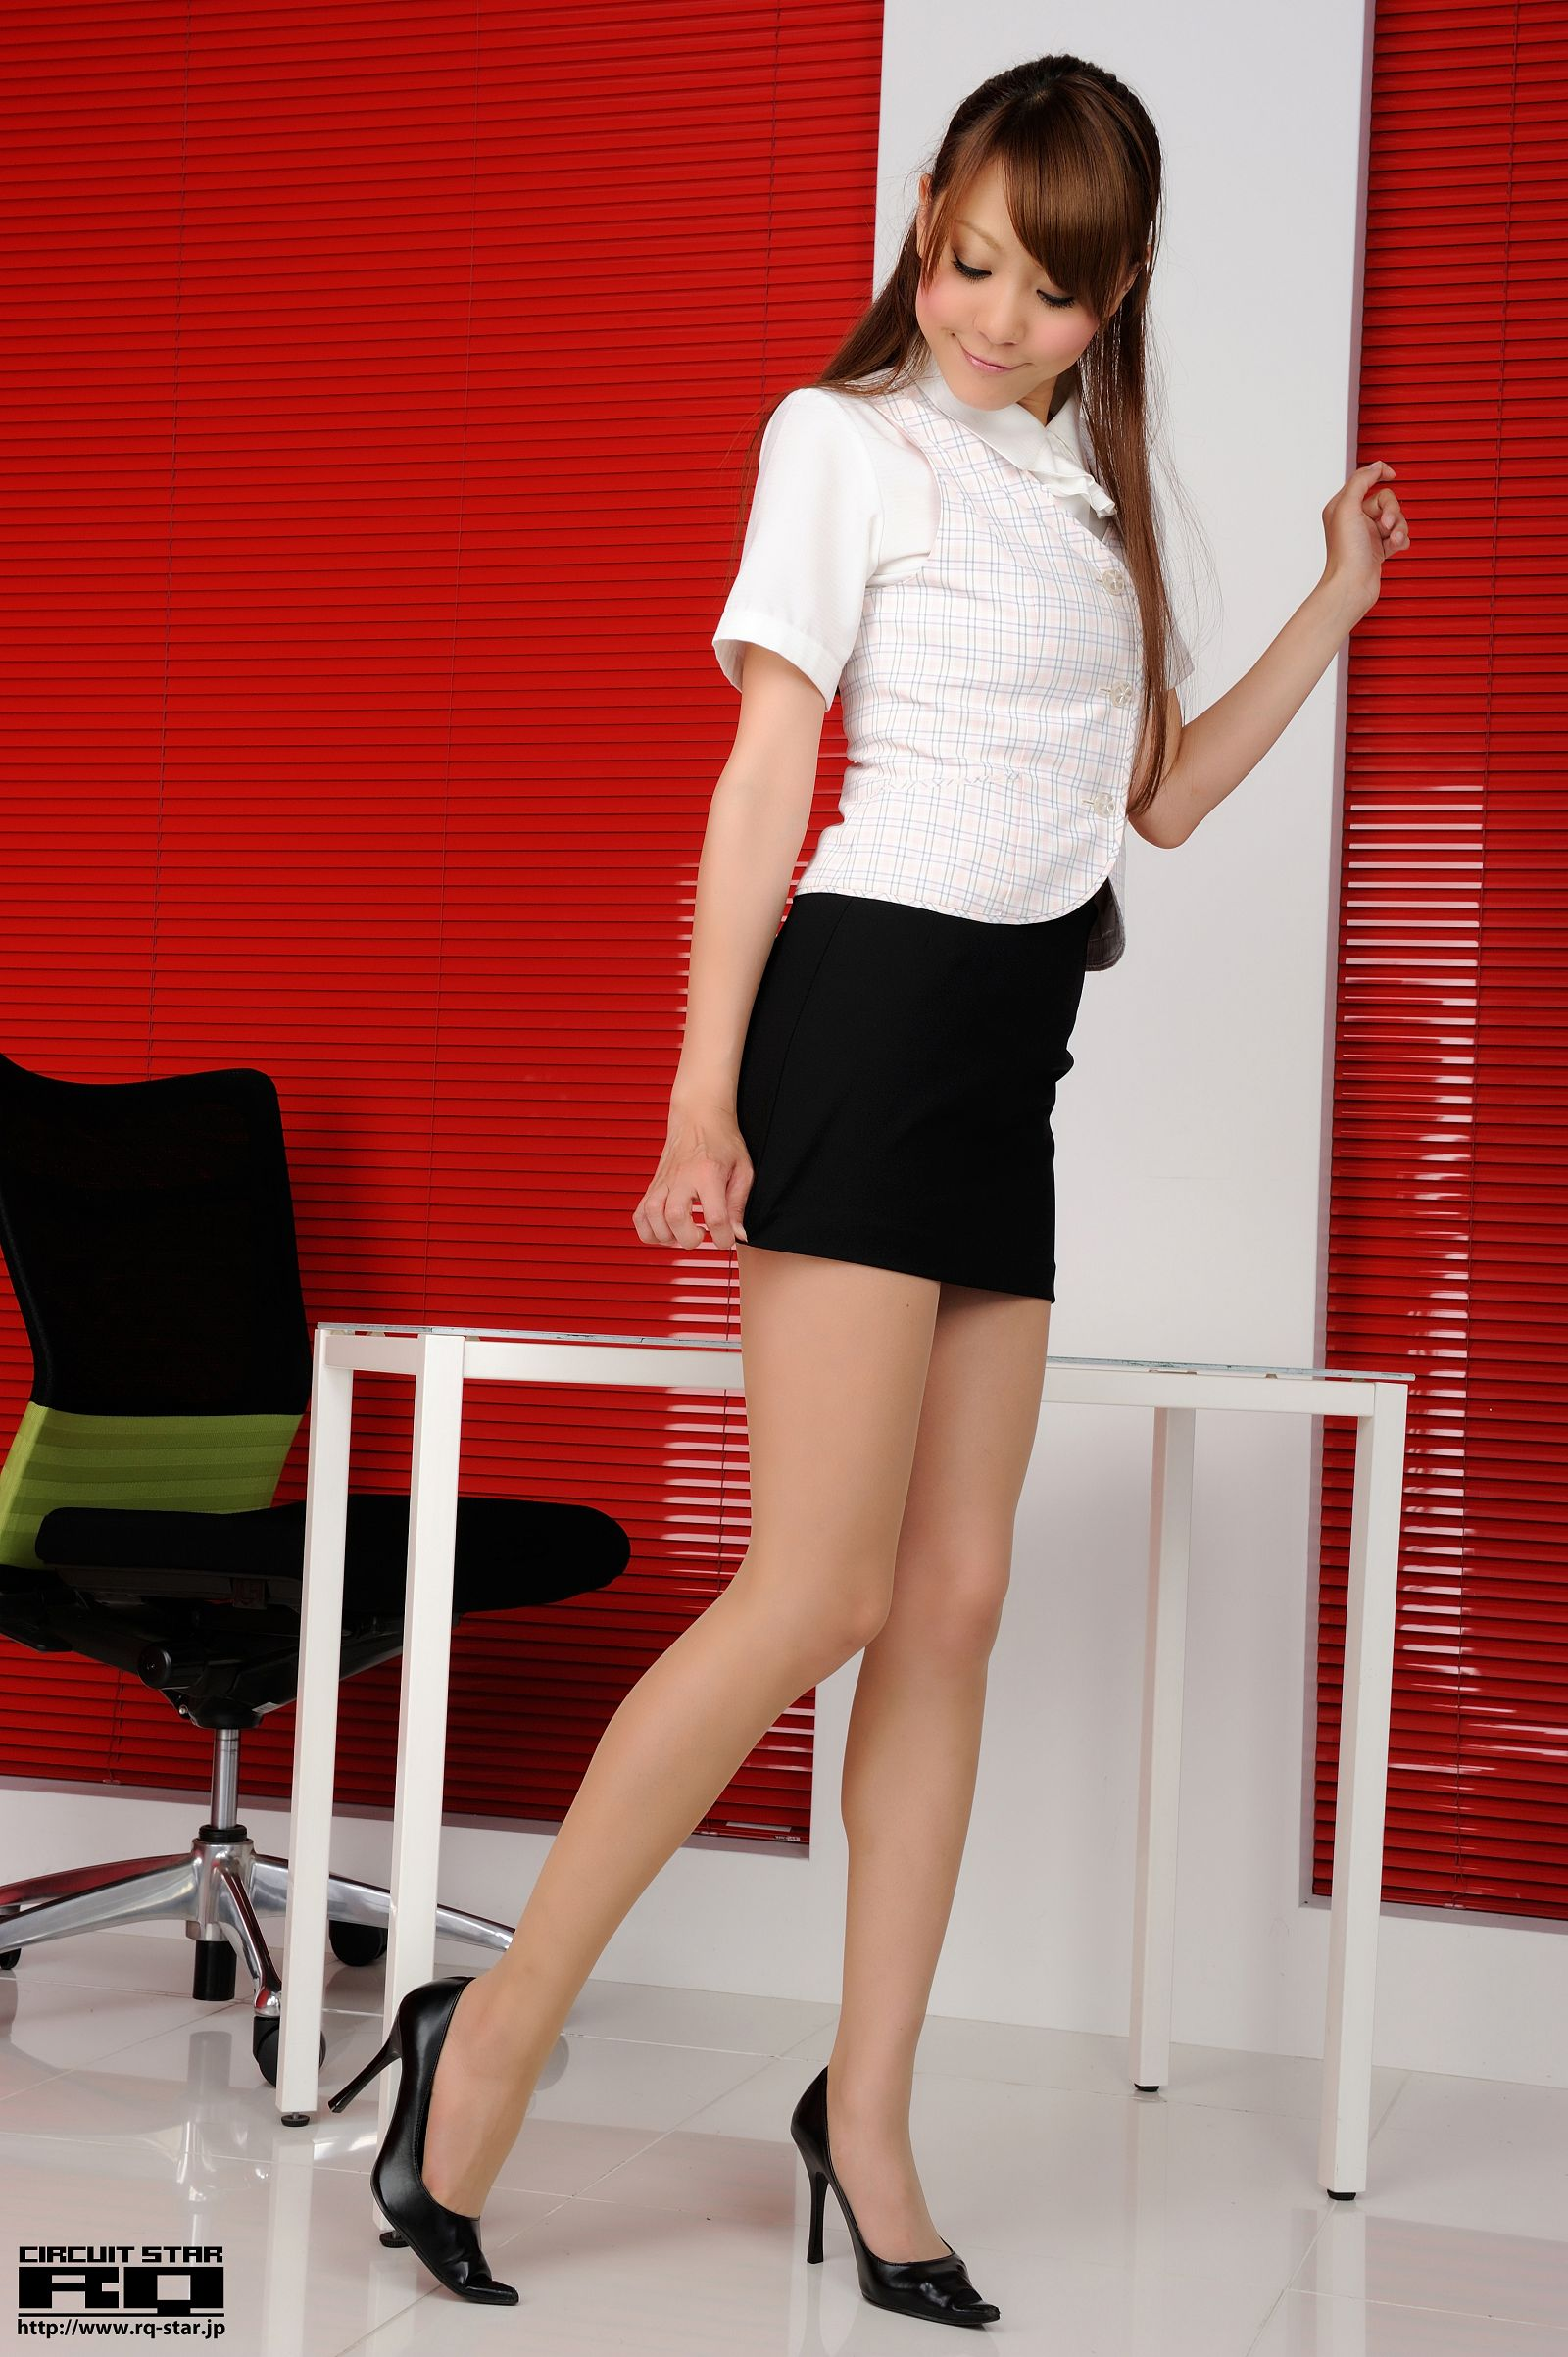 [RQ STAR美女] NO.00657 Saki Ueda 植田早紀 Office Lady[77P] RQ STAR 第2张